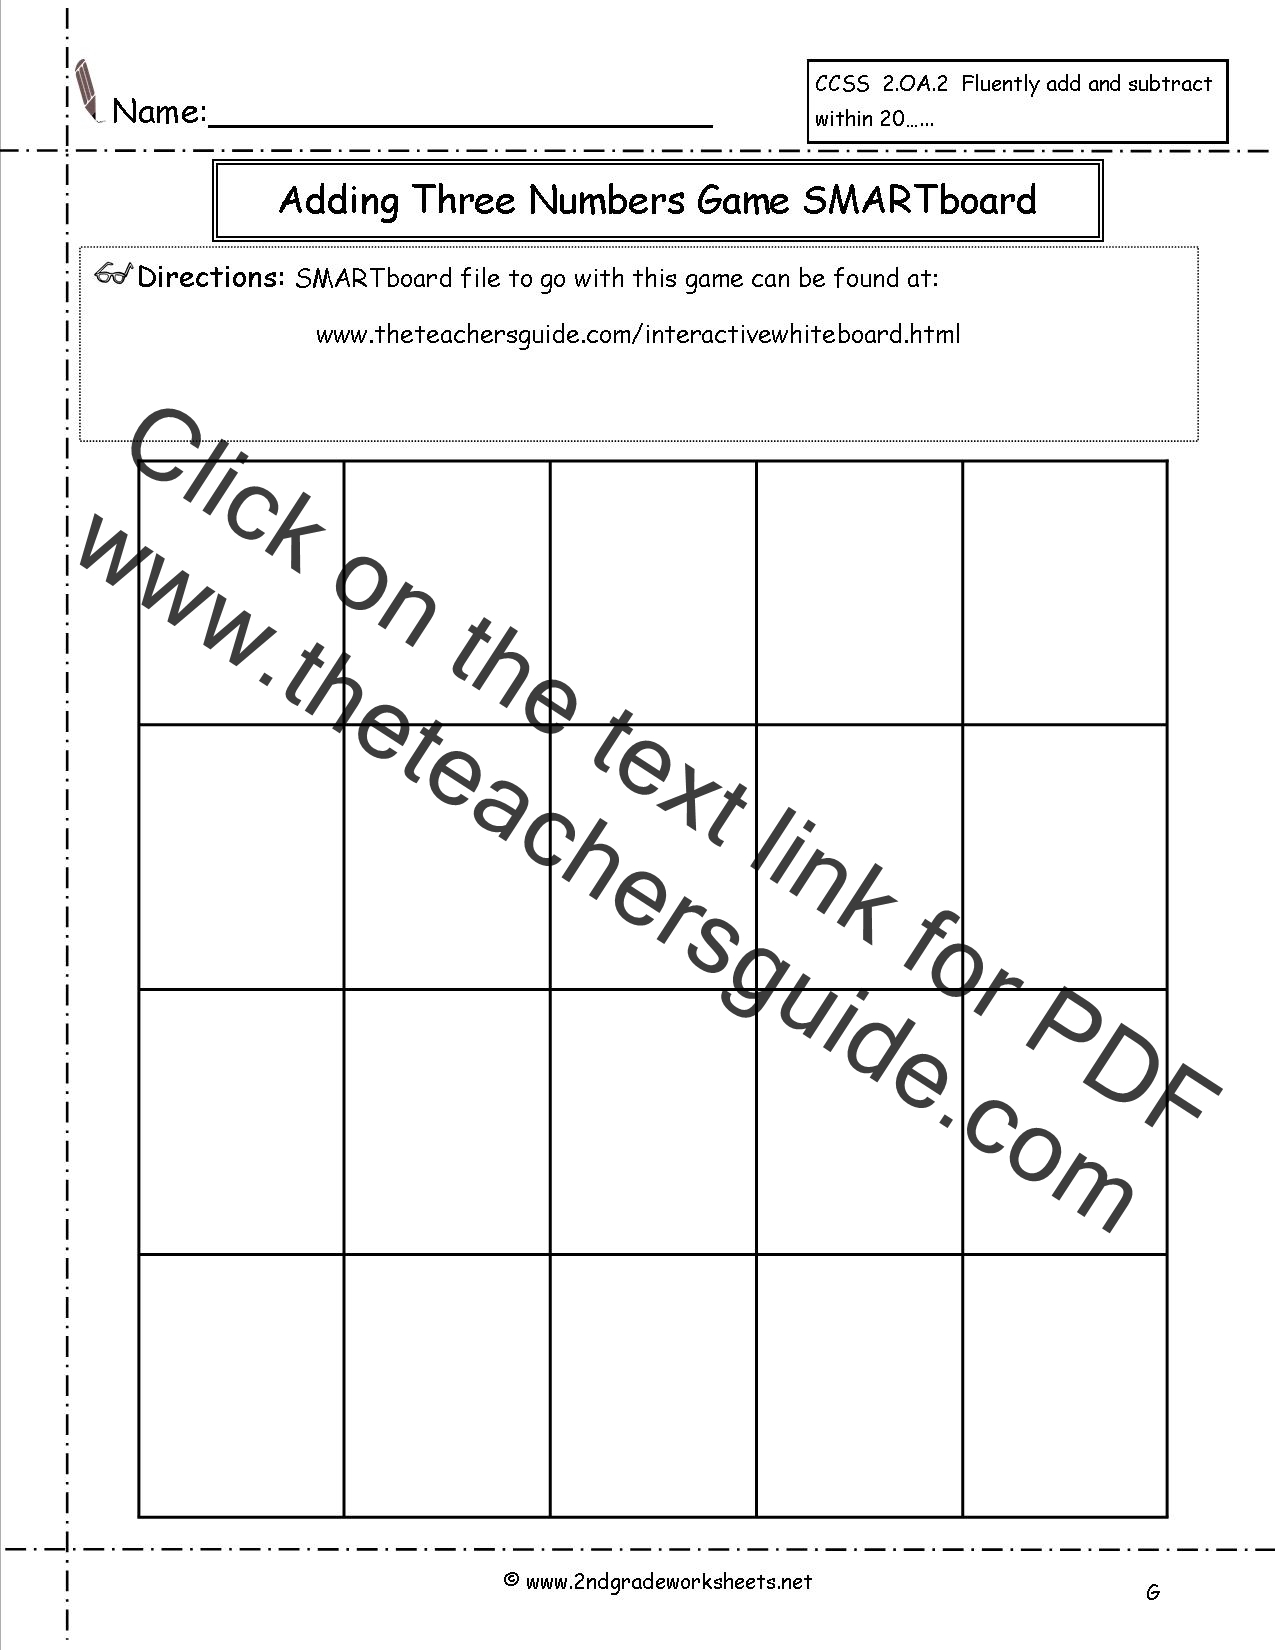 Adding Three or More Single Digit Numbers Worksheets